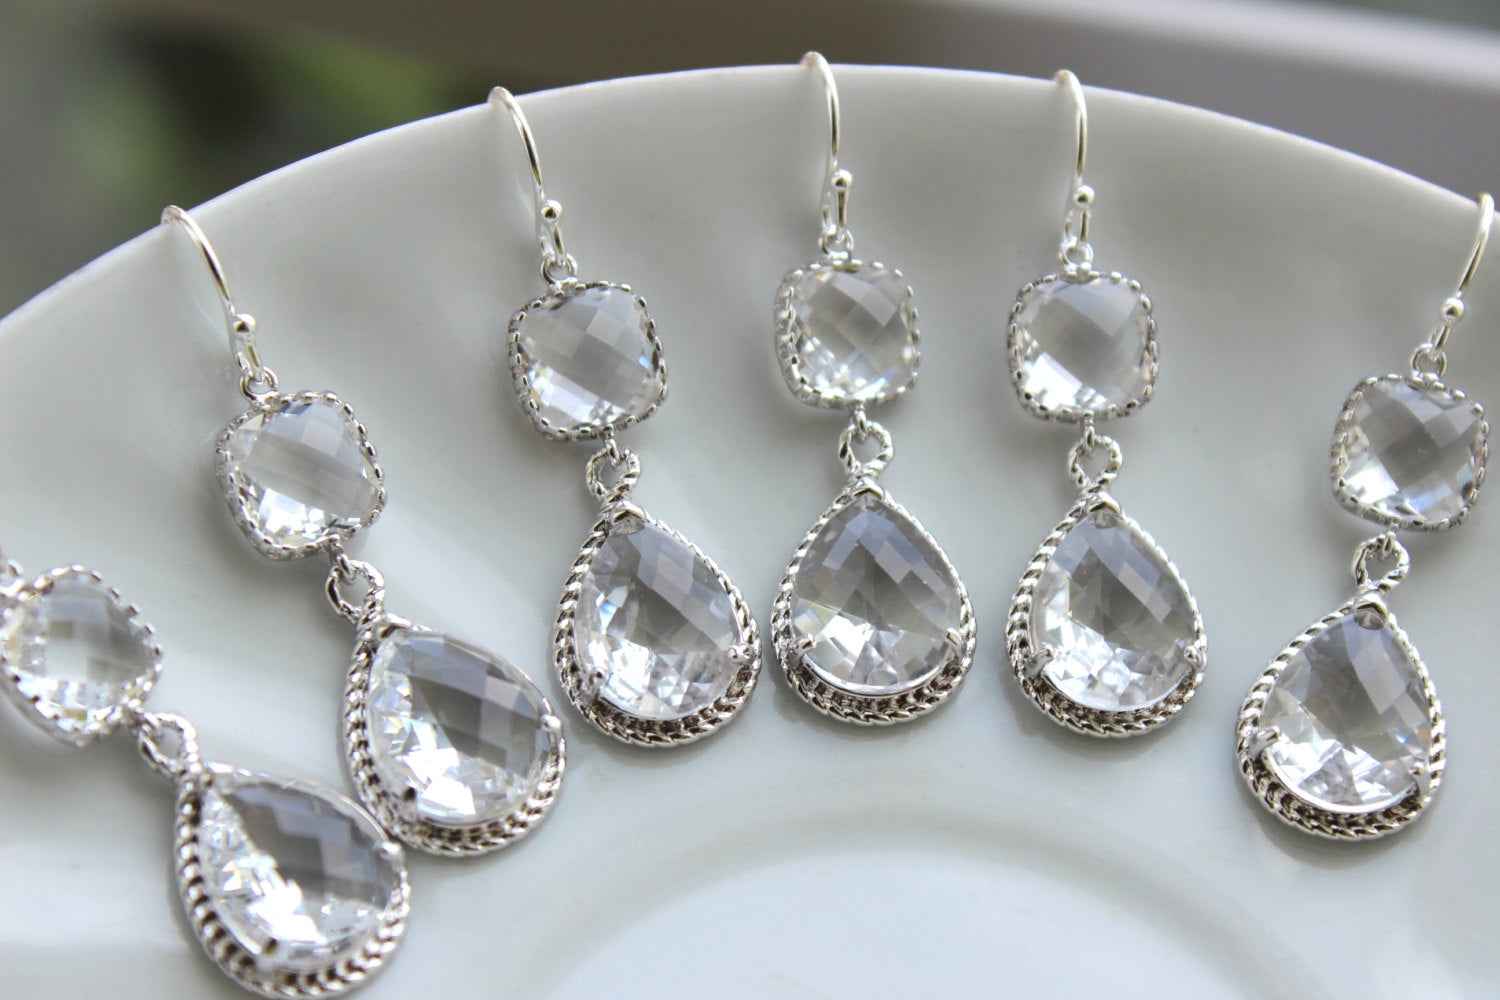 READY TO SHIP 10% Off Set of 3 Wedding Jewelry Crystal Clear Bridesmaid Earrings Bridal Bridesmaid Two Tier Crystal Earrings Silver Teardrop